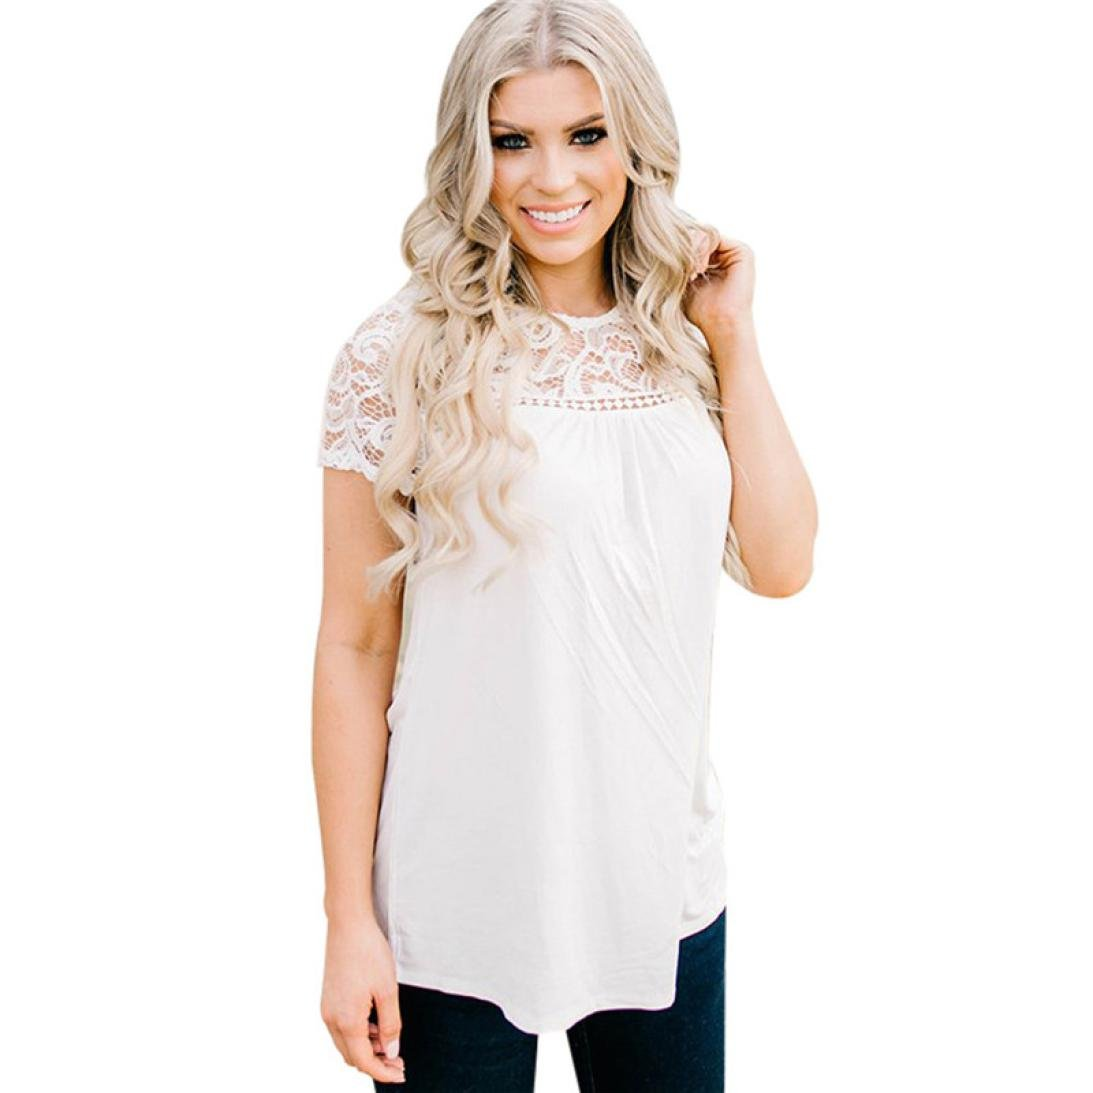 BCDshop Shirts Women Short Sleeve T-Shirt Casual Ladies Lace Hollow Solid Blouse Tops Soft (White, XL)